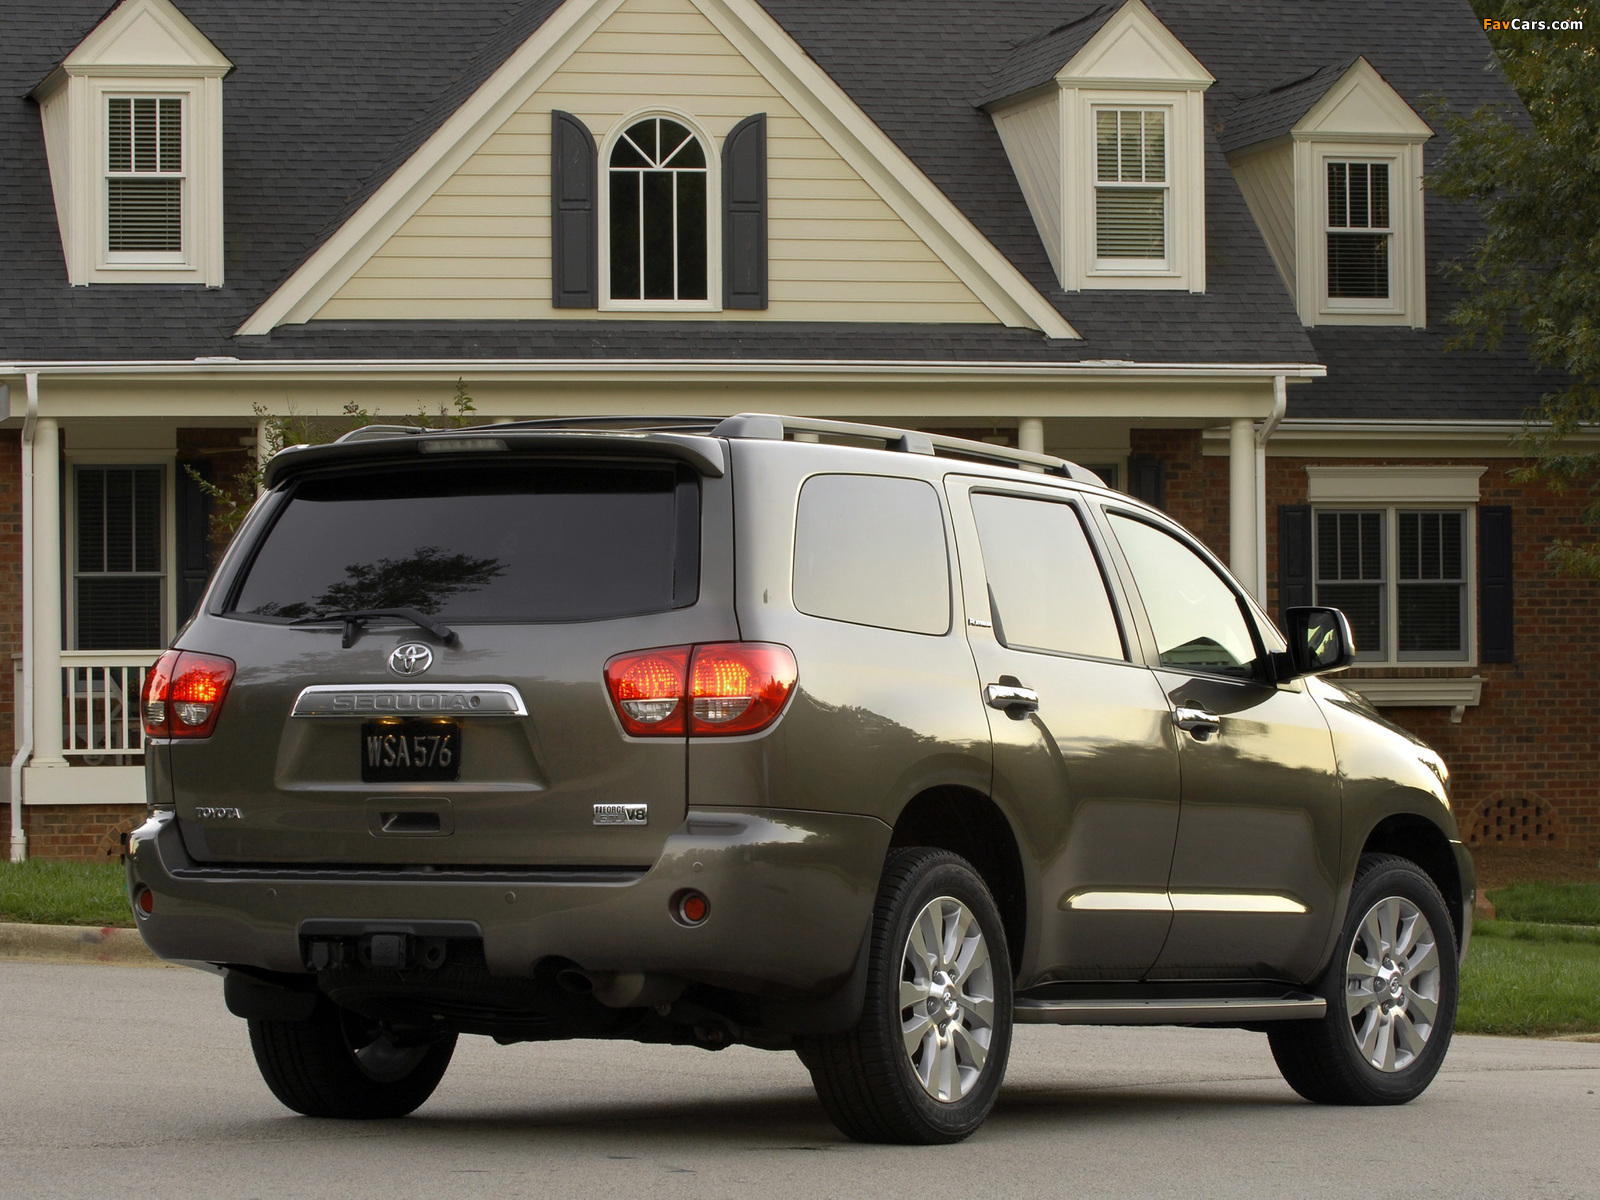 Toyota Sequoia Limited 2007 images (1600 x 1200)